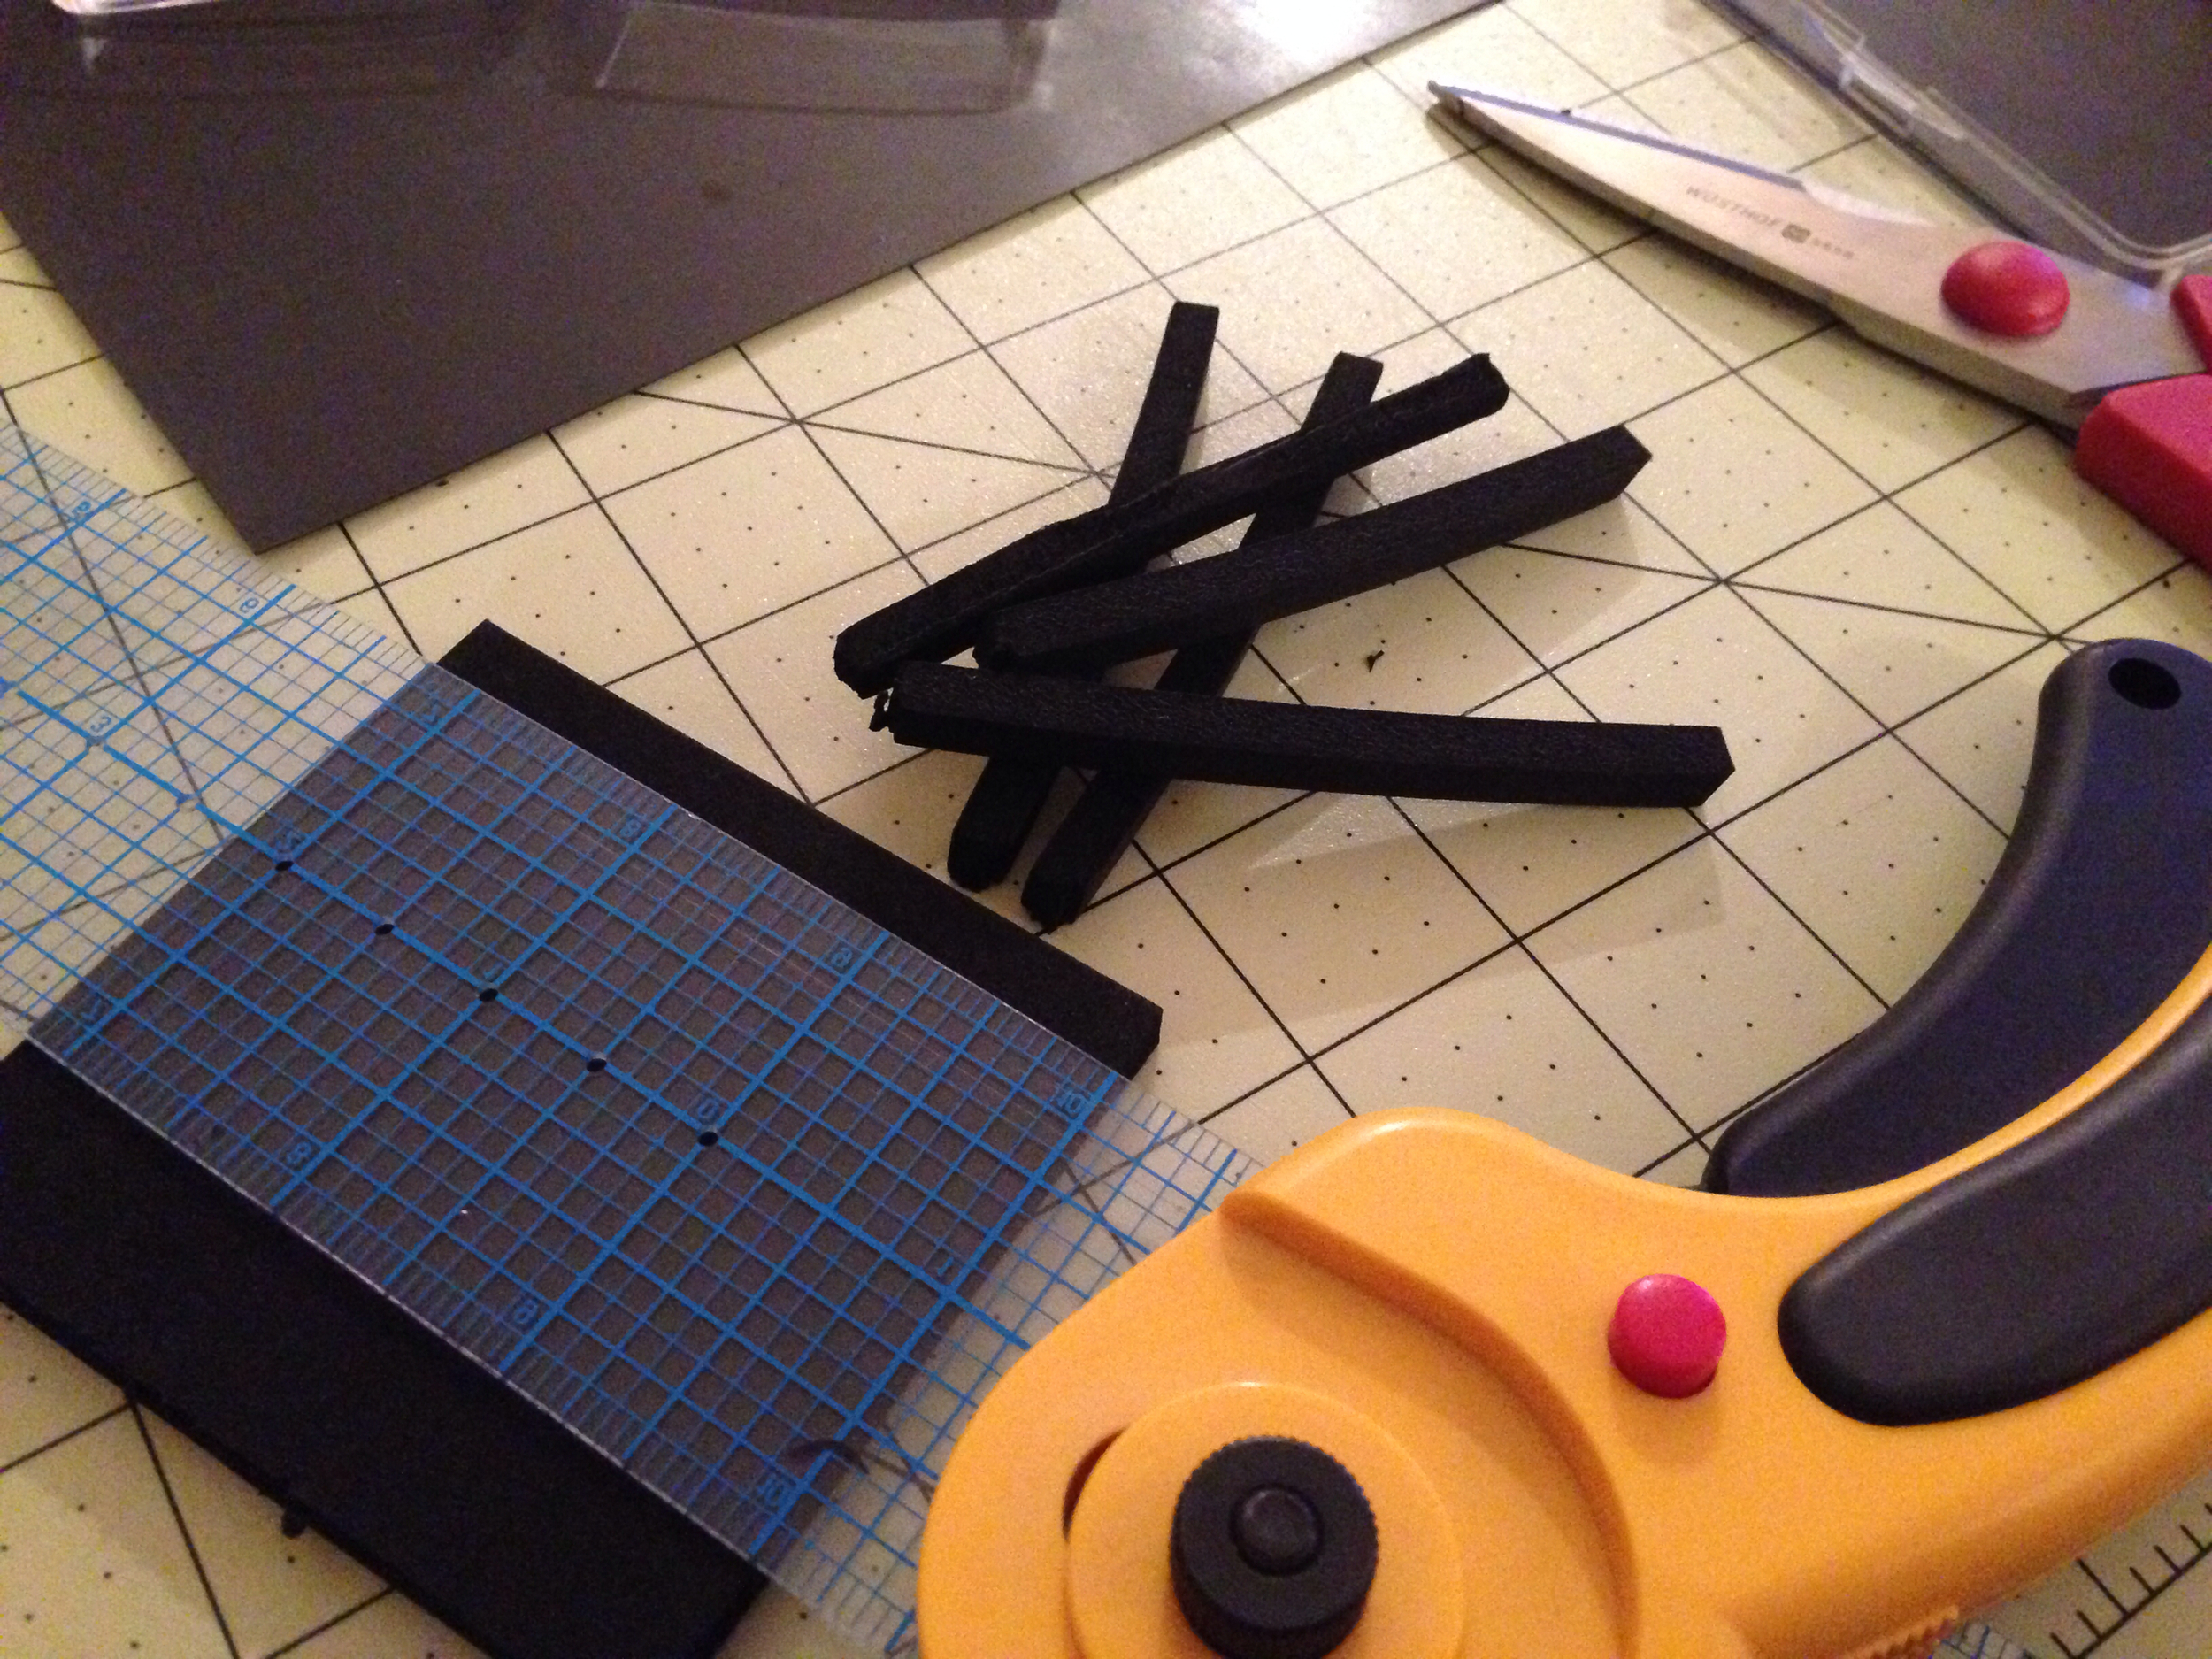 Measure and cut, using the straight edge, 2-3 foam strips. I recommend fitting and trimming before gluing.